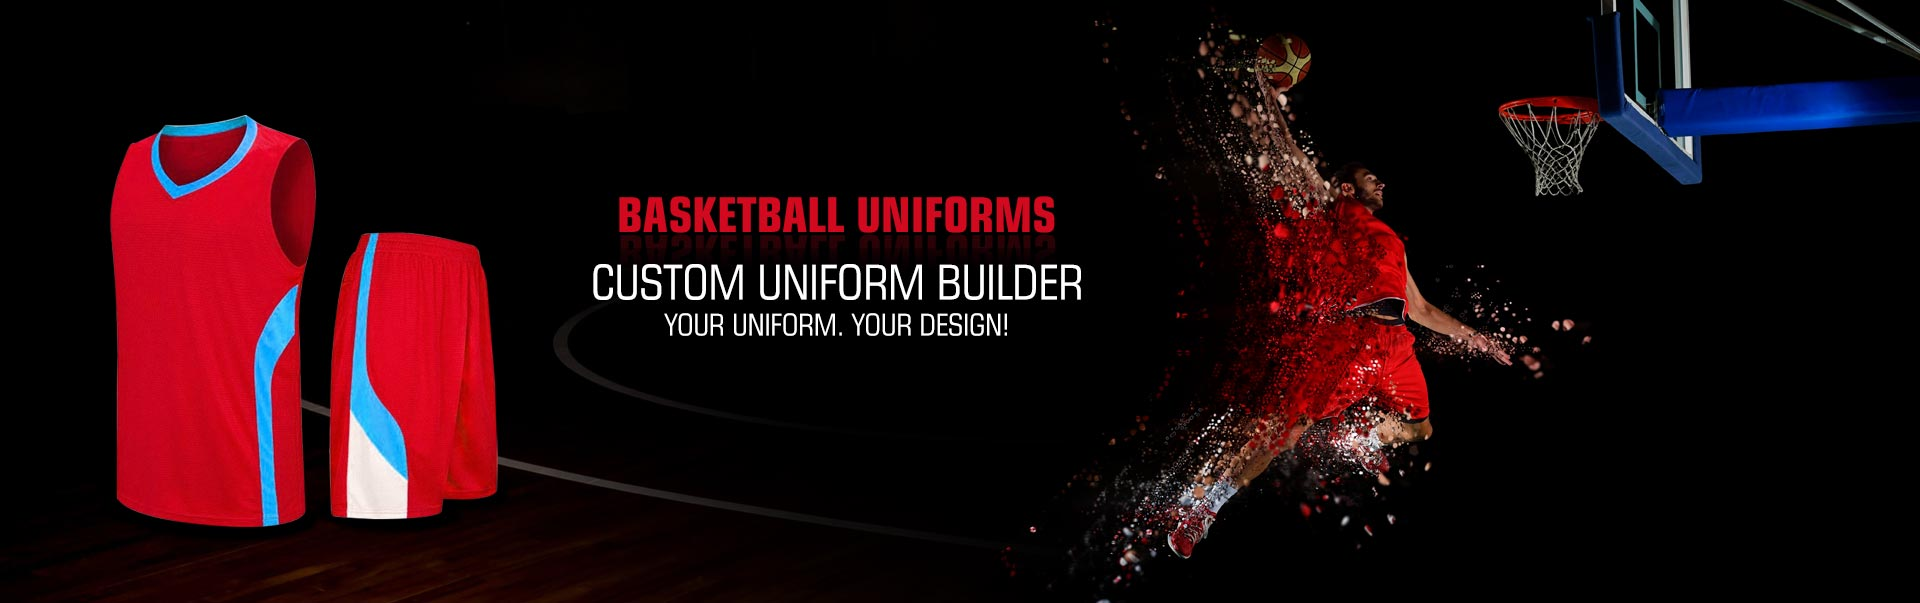 Basketball Uniforms Wholesaler, Suppliers in Whangarei